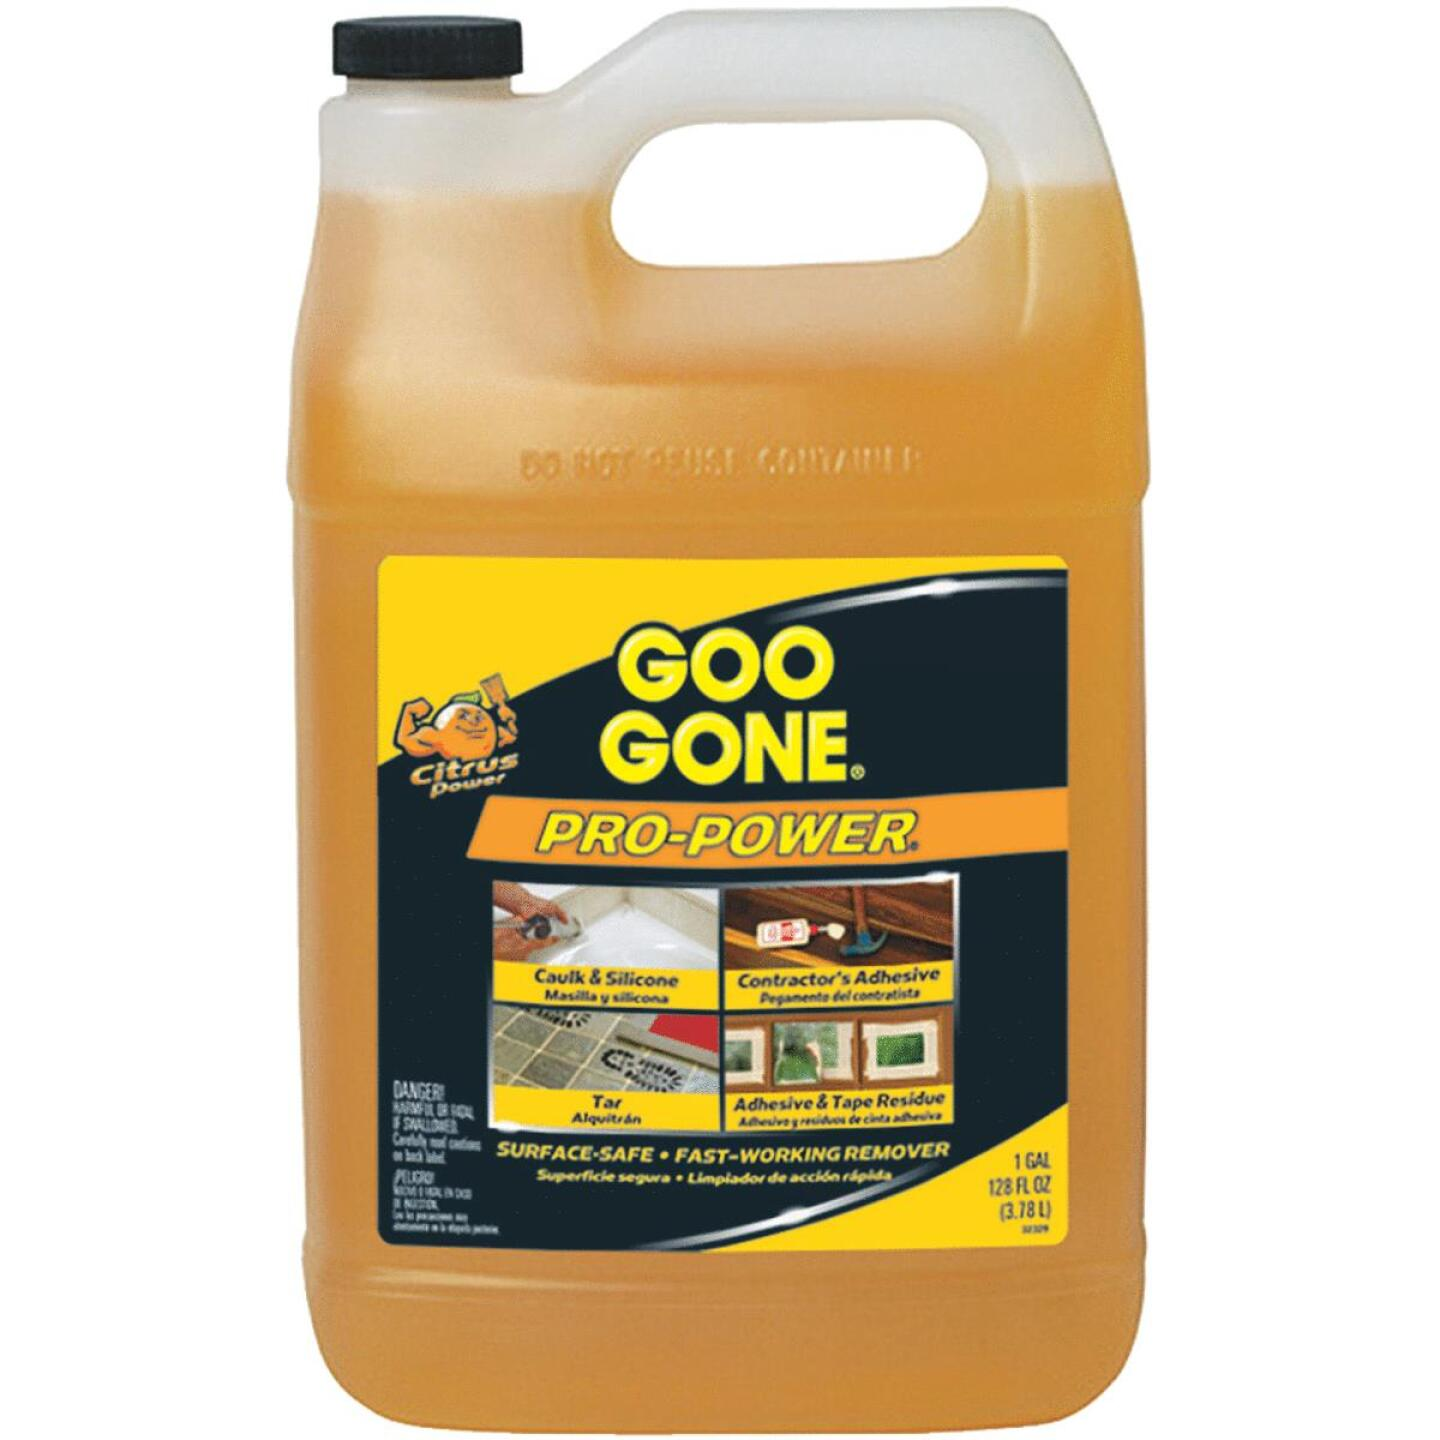 Goo Gone 1 Gal. Pro-Power Adhesive Remover Image 151